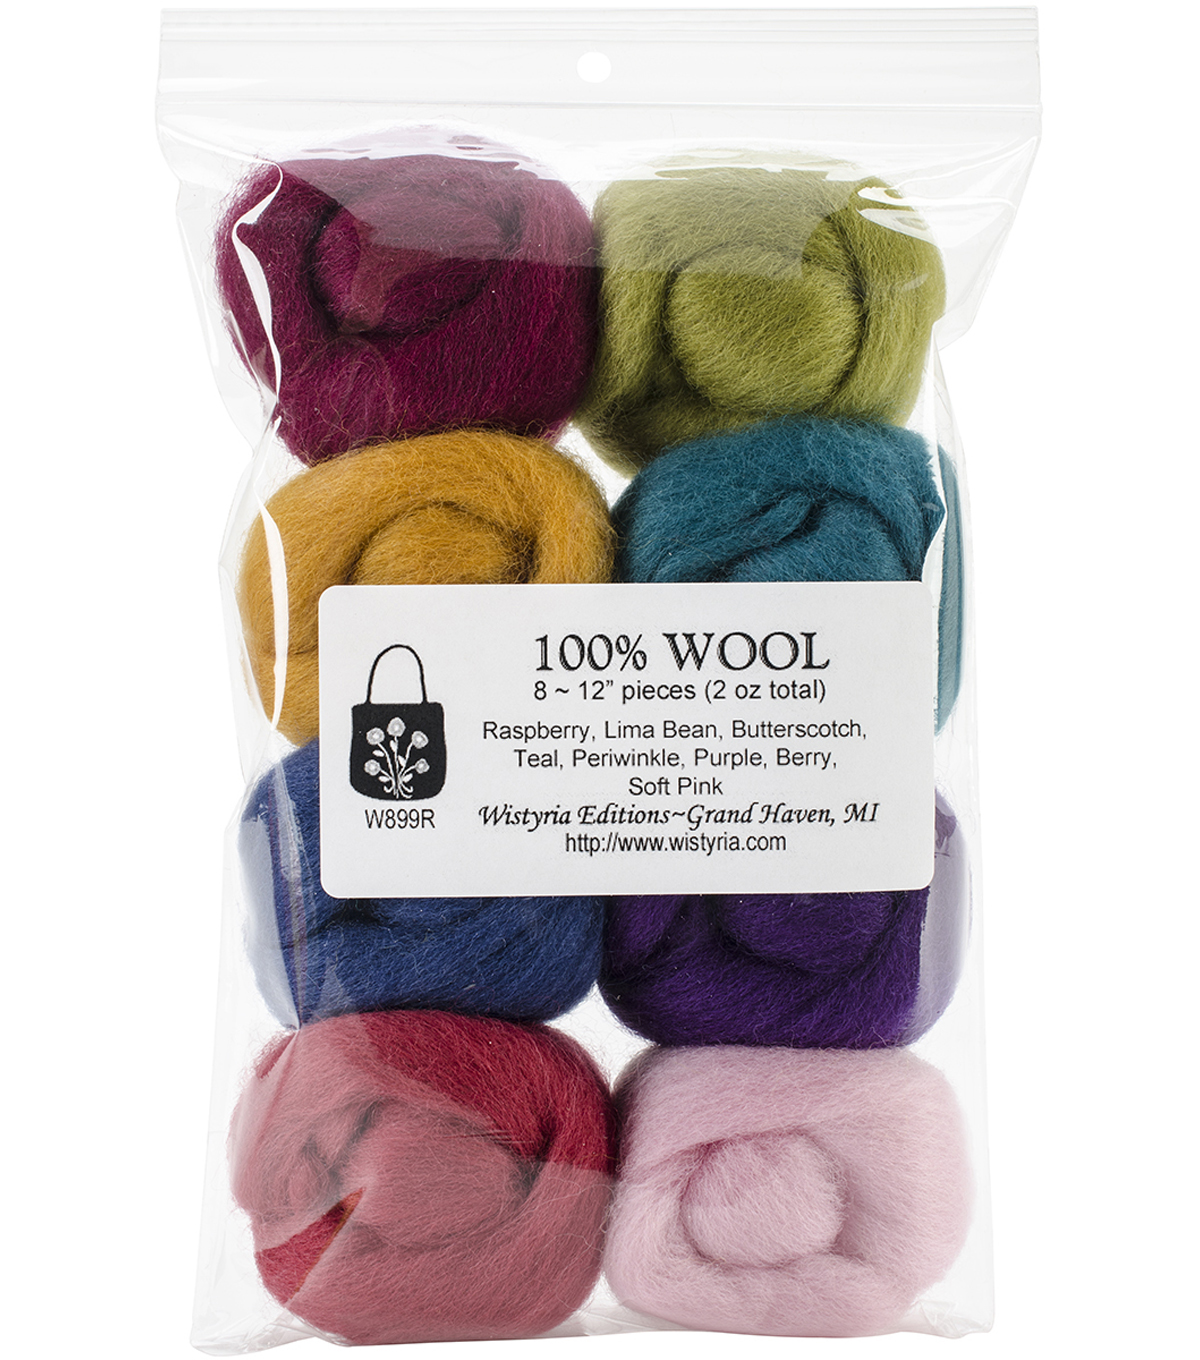 Wistyria Editions Ultra Fine Wool Roving, Designer